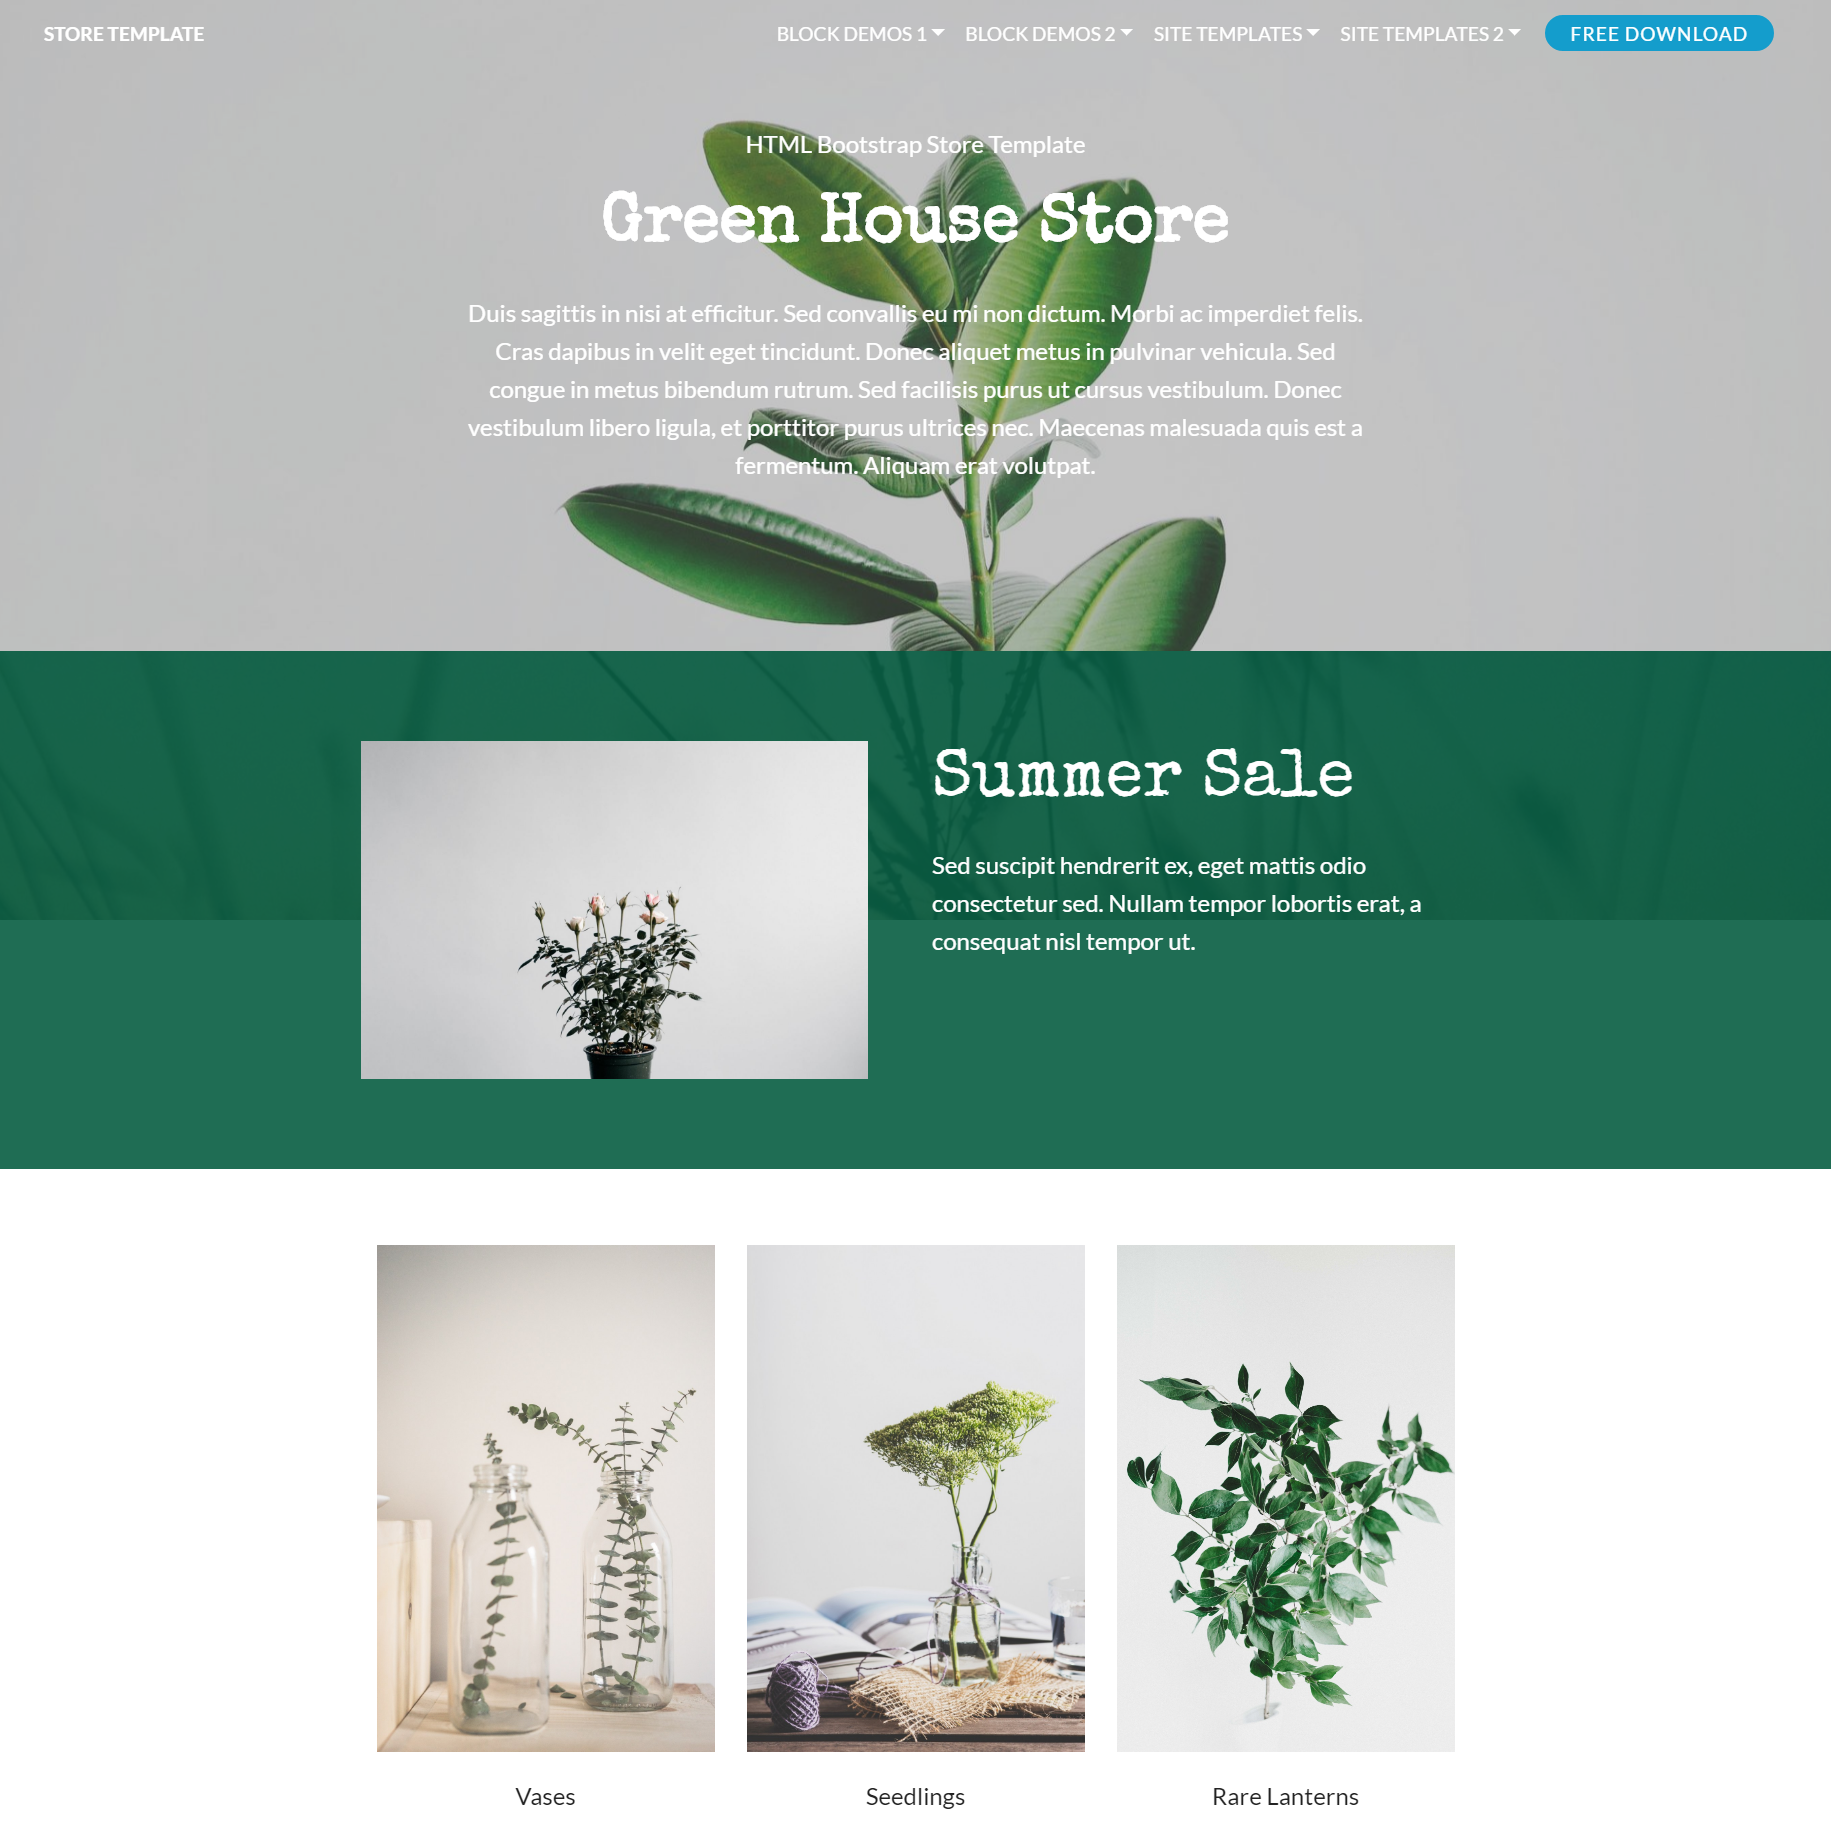 Free Download Bootstrap Store Templates